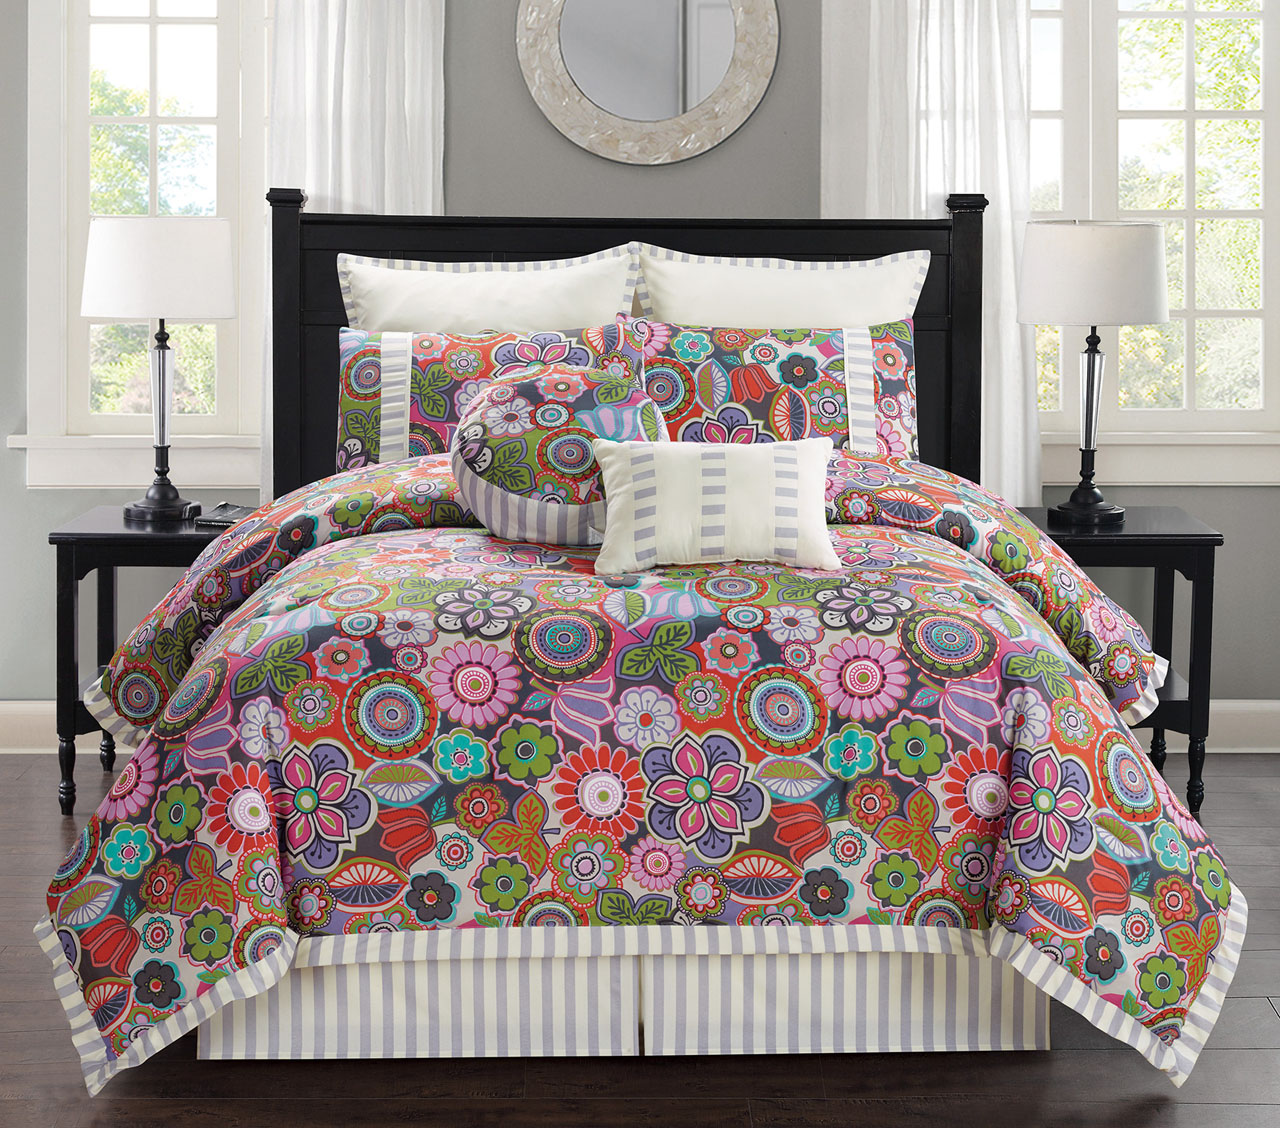 12 Piece Palermo Floral Bed In A Bag Set